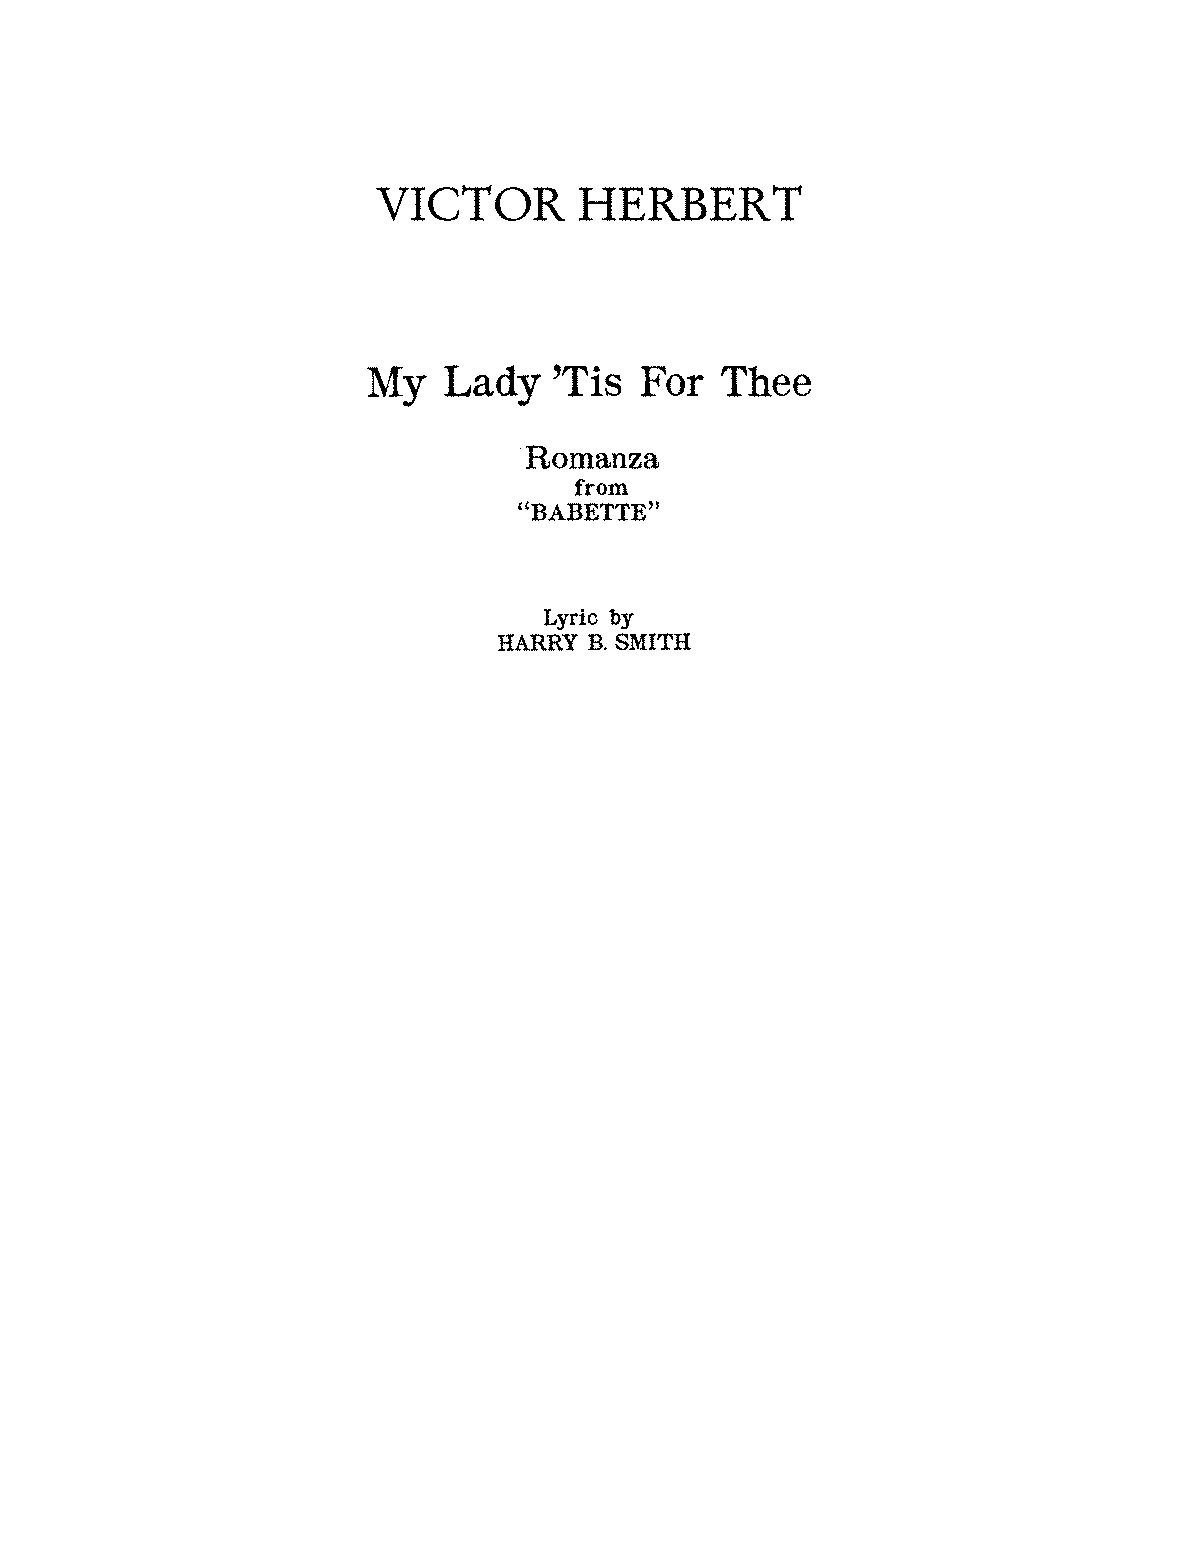 PMLP170093-HERBERT My Lady 'Tis for Thee from 'Babette'.pdf